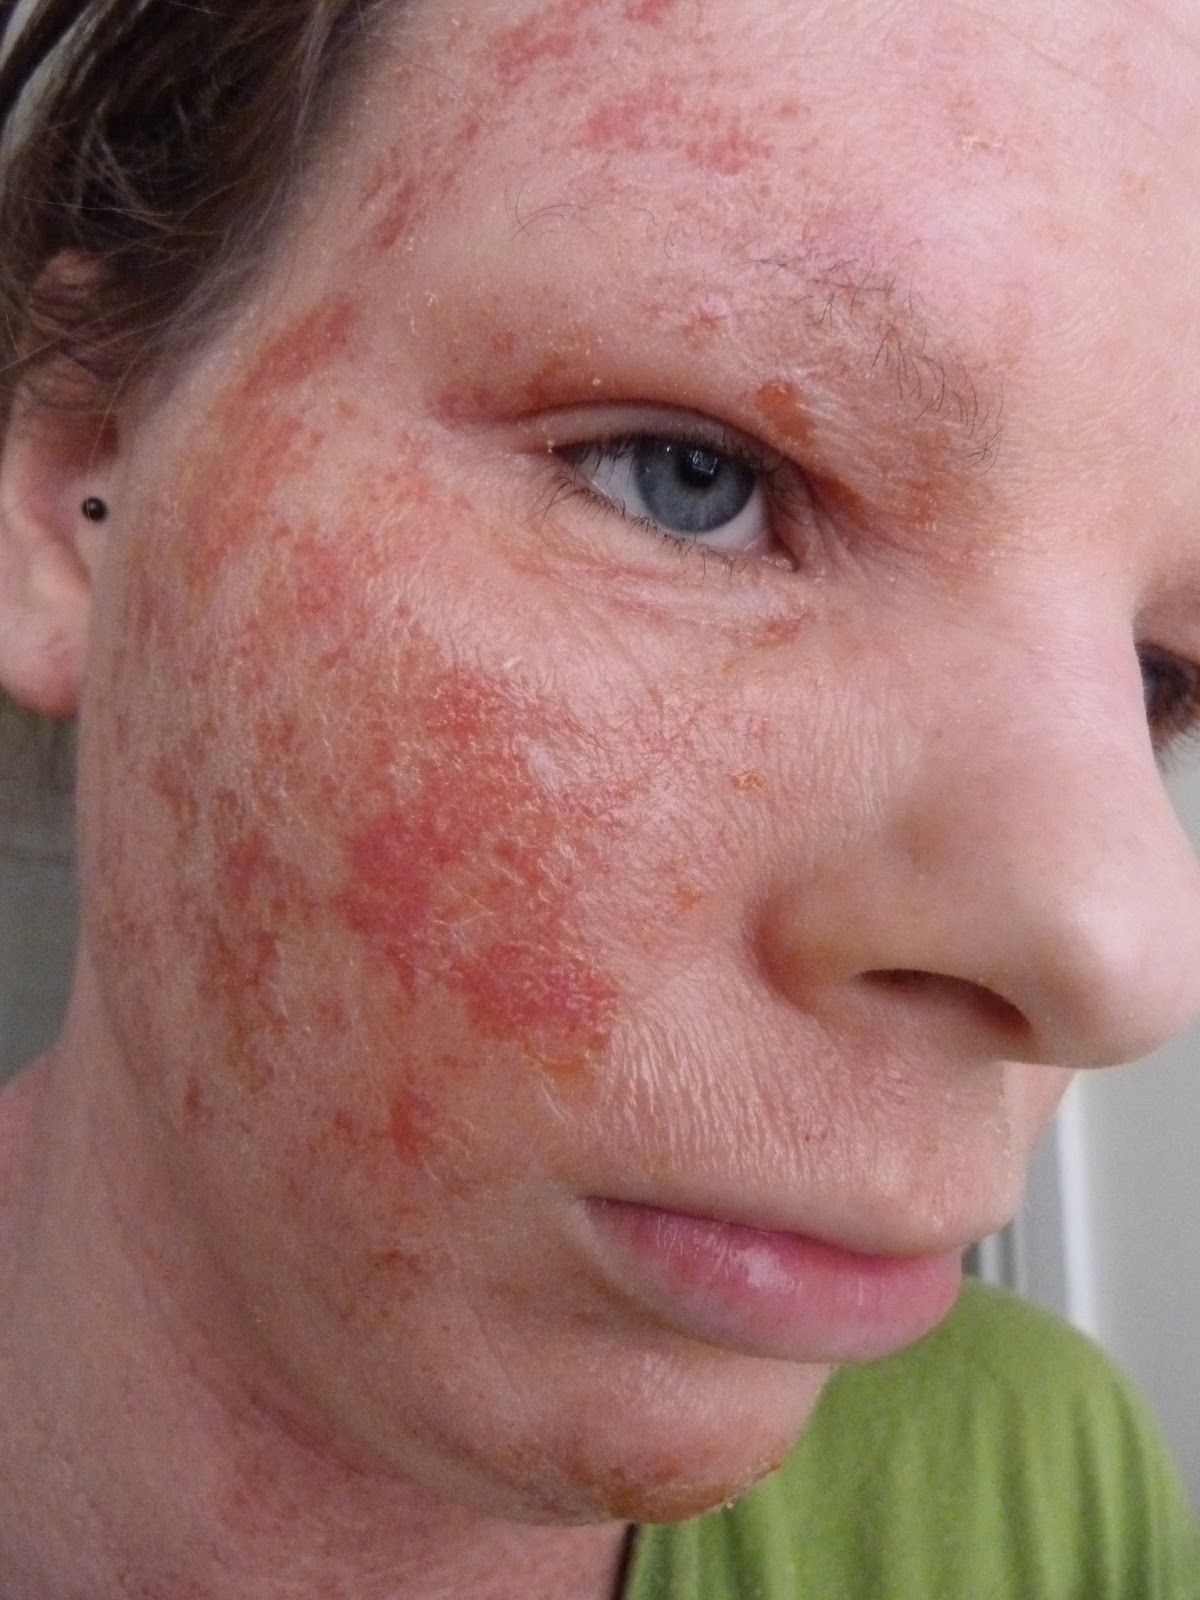 steroid induced rosacea flare up